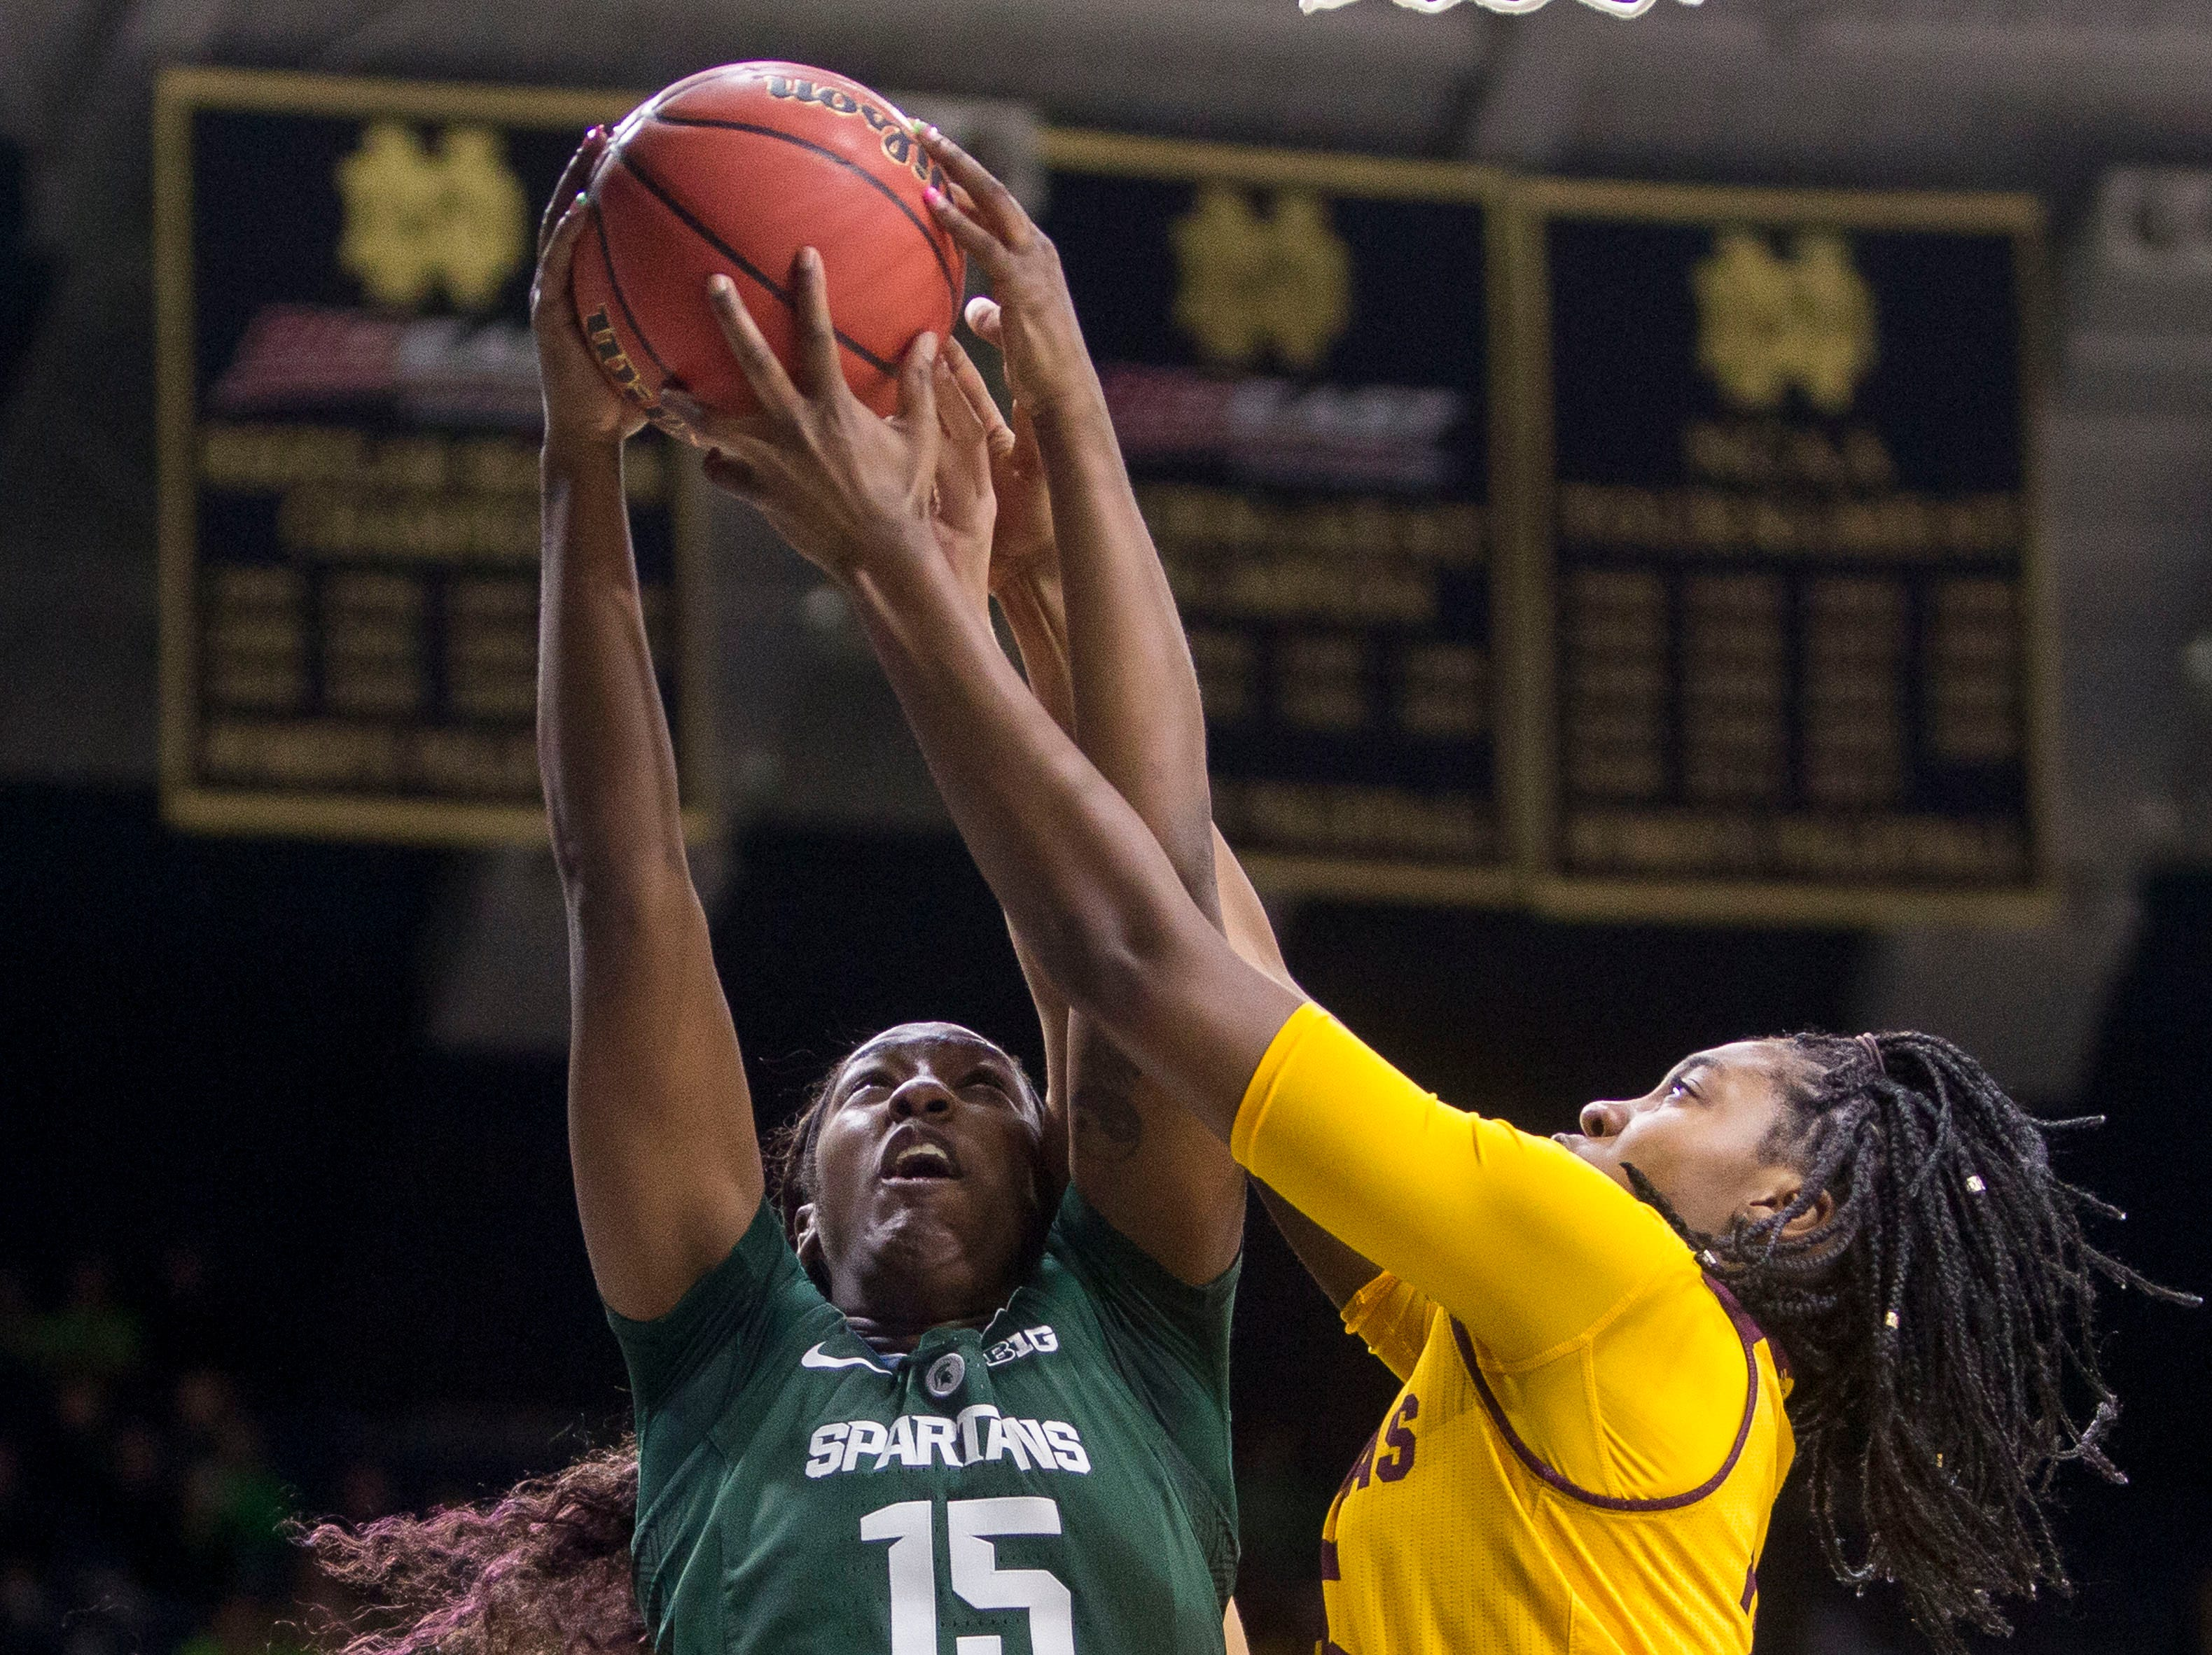 Michigan State's Victoria Gaines (15) competes for a rebound with Central Michigan's Jahari Smith, right, during a first-round game in the NCAA women's college basketball tournament in South Bend, Ind., Saturday, March 23, 2019.